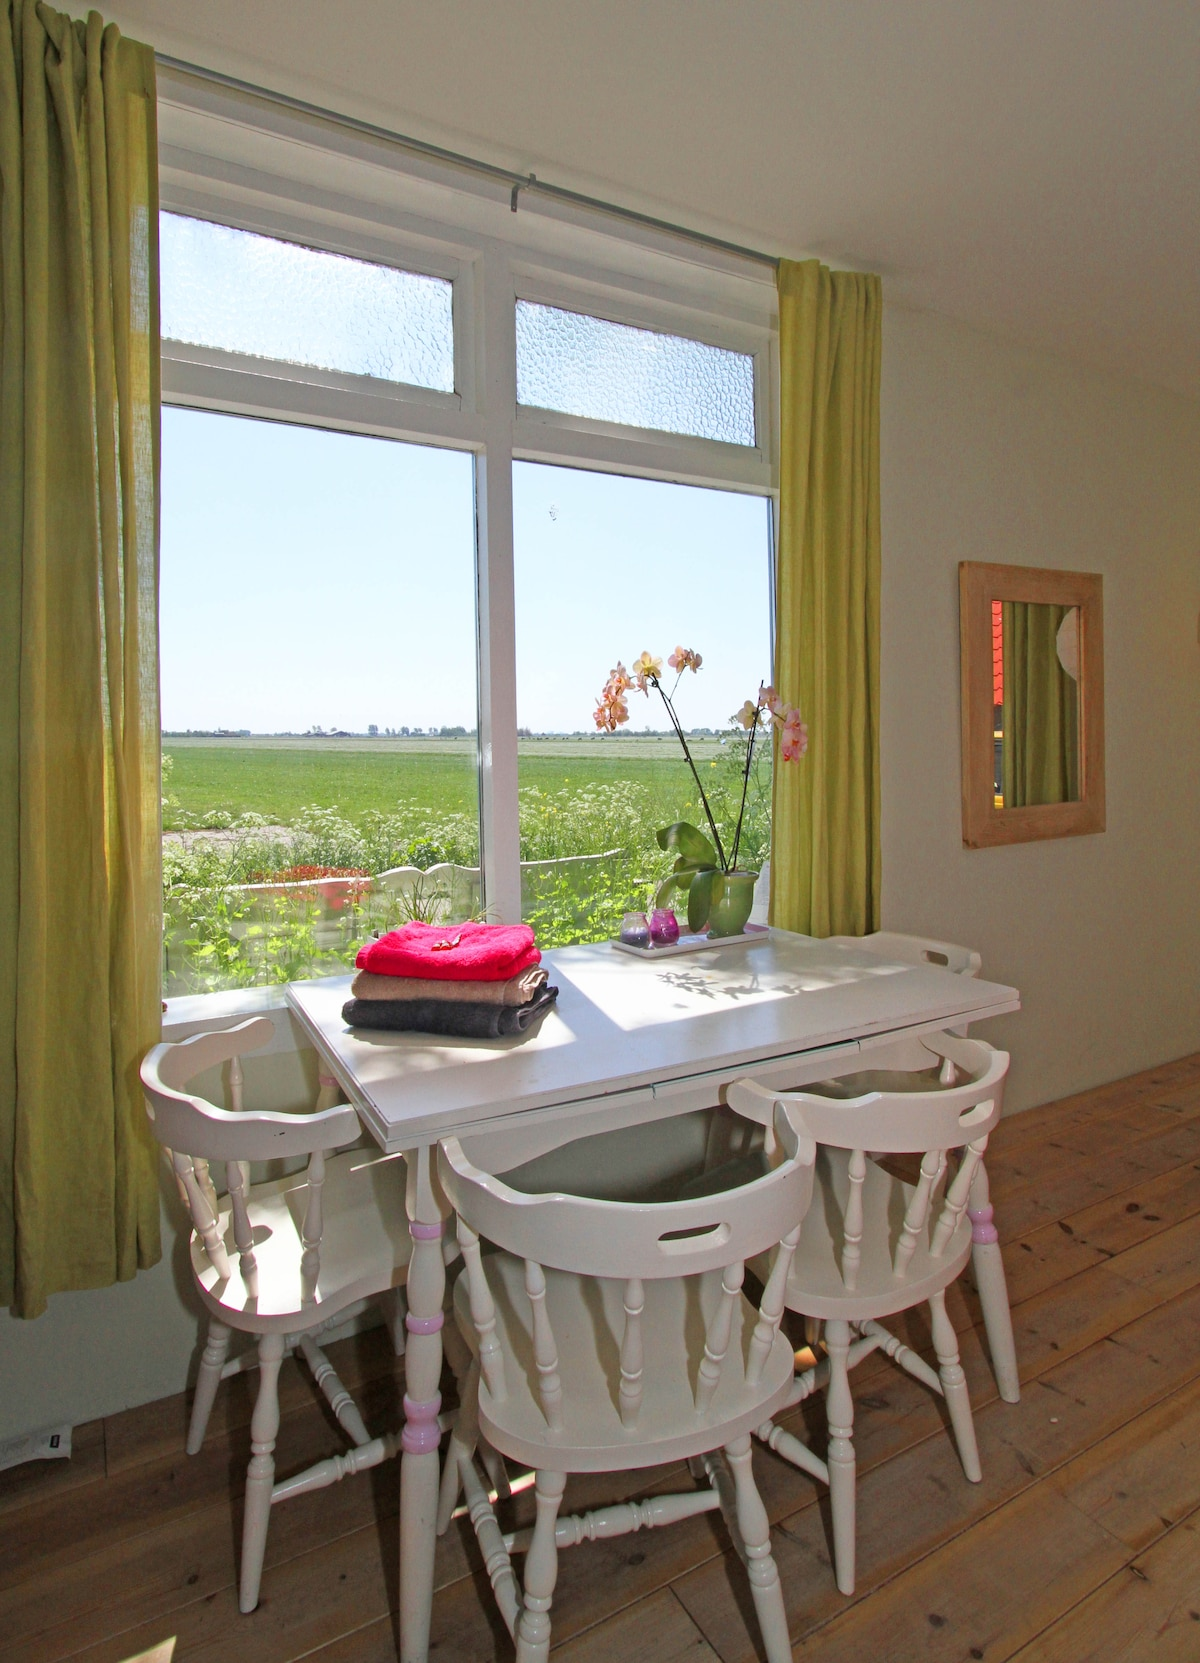 Charming holidayhouse with a view!